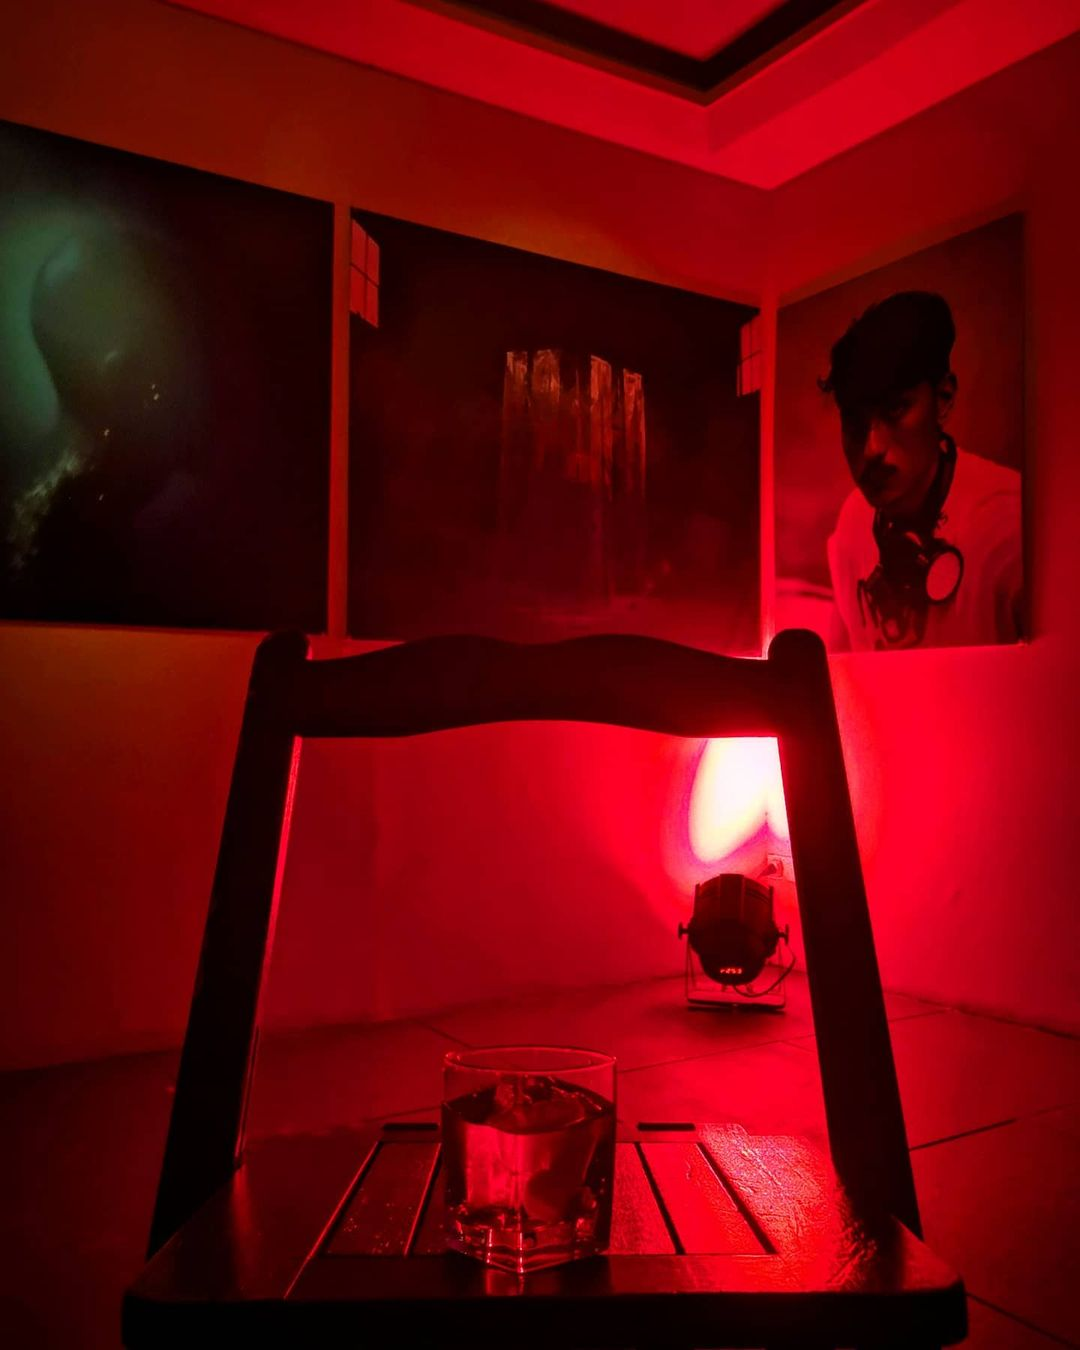 A glass of negroni sits on top of a wooden table in the middle of a room fully-saturated by red light. The walls of the room are adorned with three paintings. Welcome to Limbo.